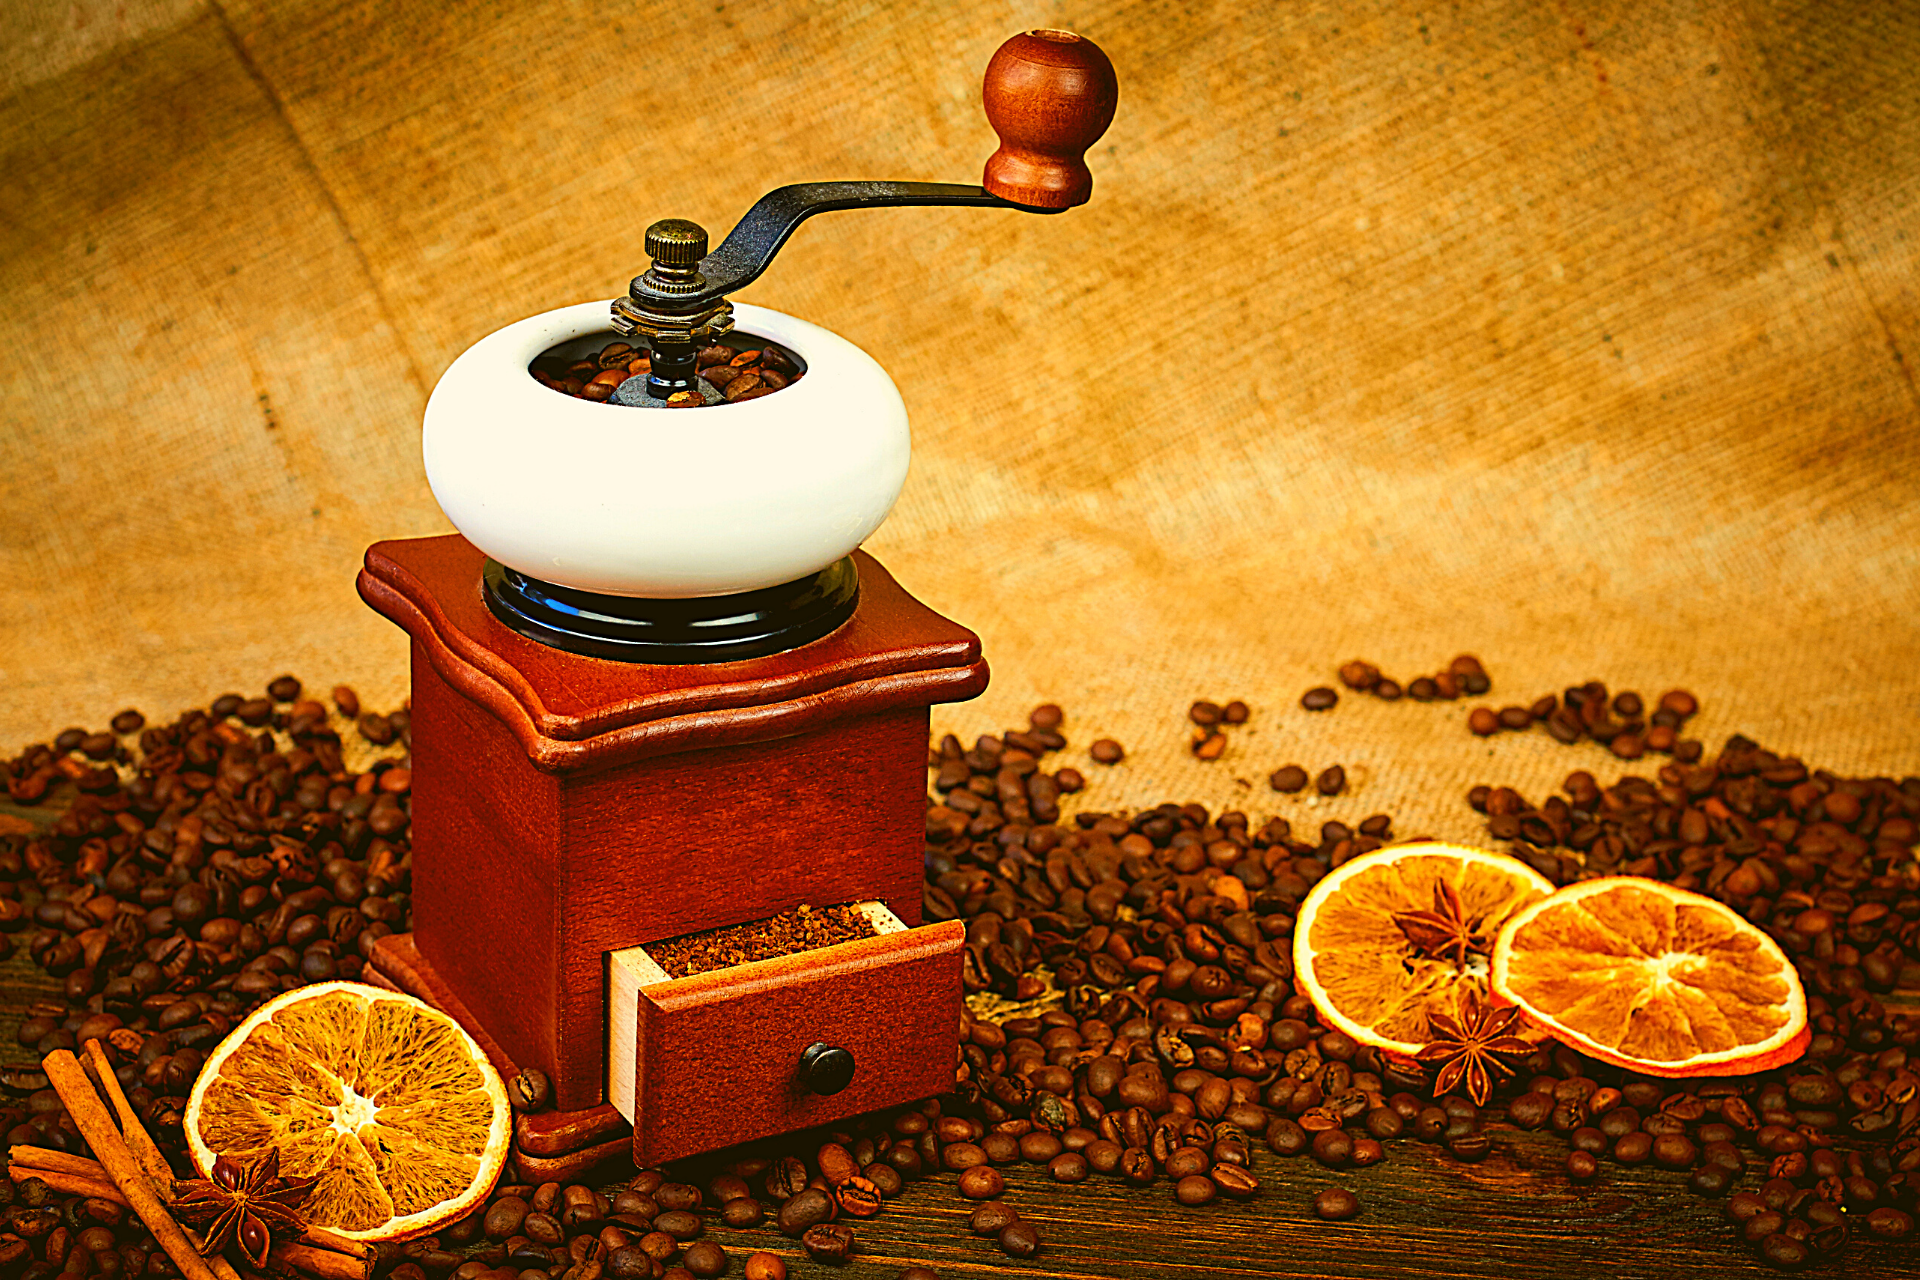 Best manual coffee grinder It really does not matter which